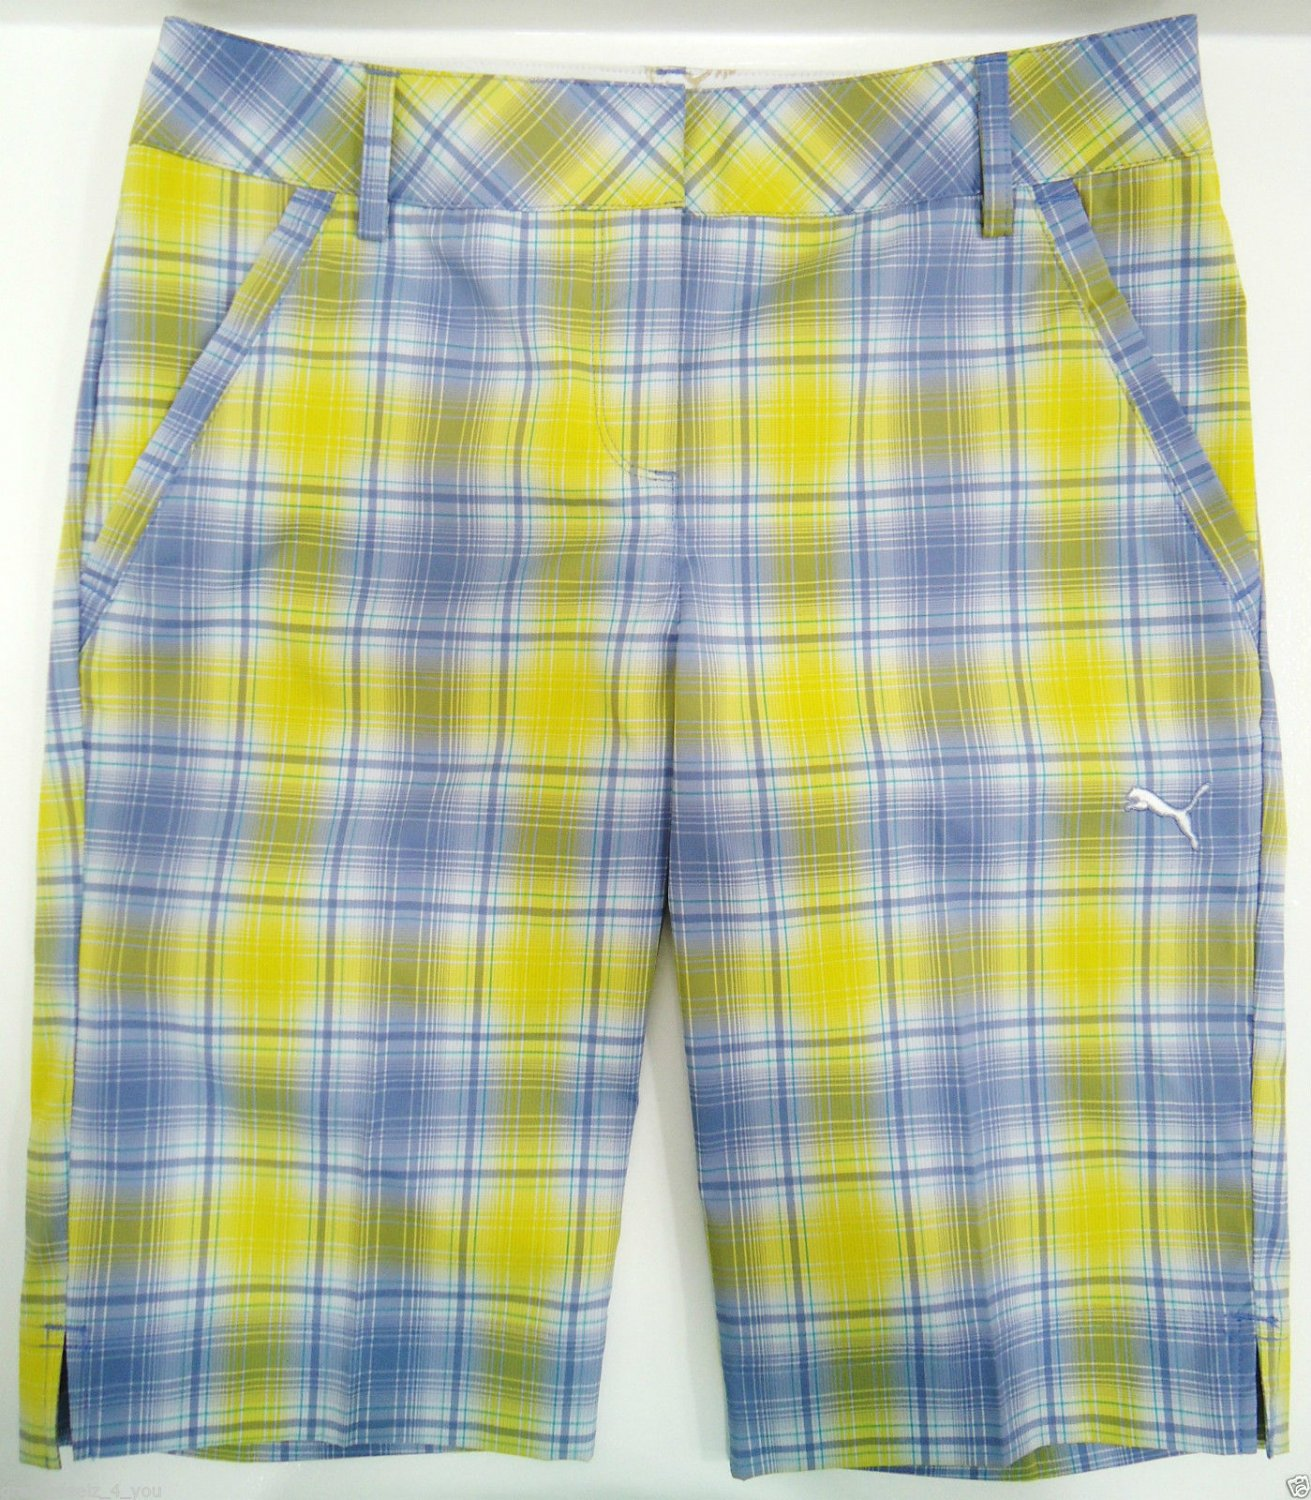 PUMA - SIZE 2 - DRY CELL - LIME - GRAY - PLAID - GOLF - SHORTS - LPGA - NEW